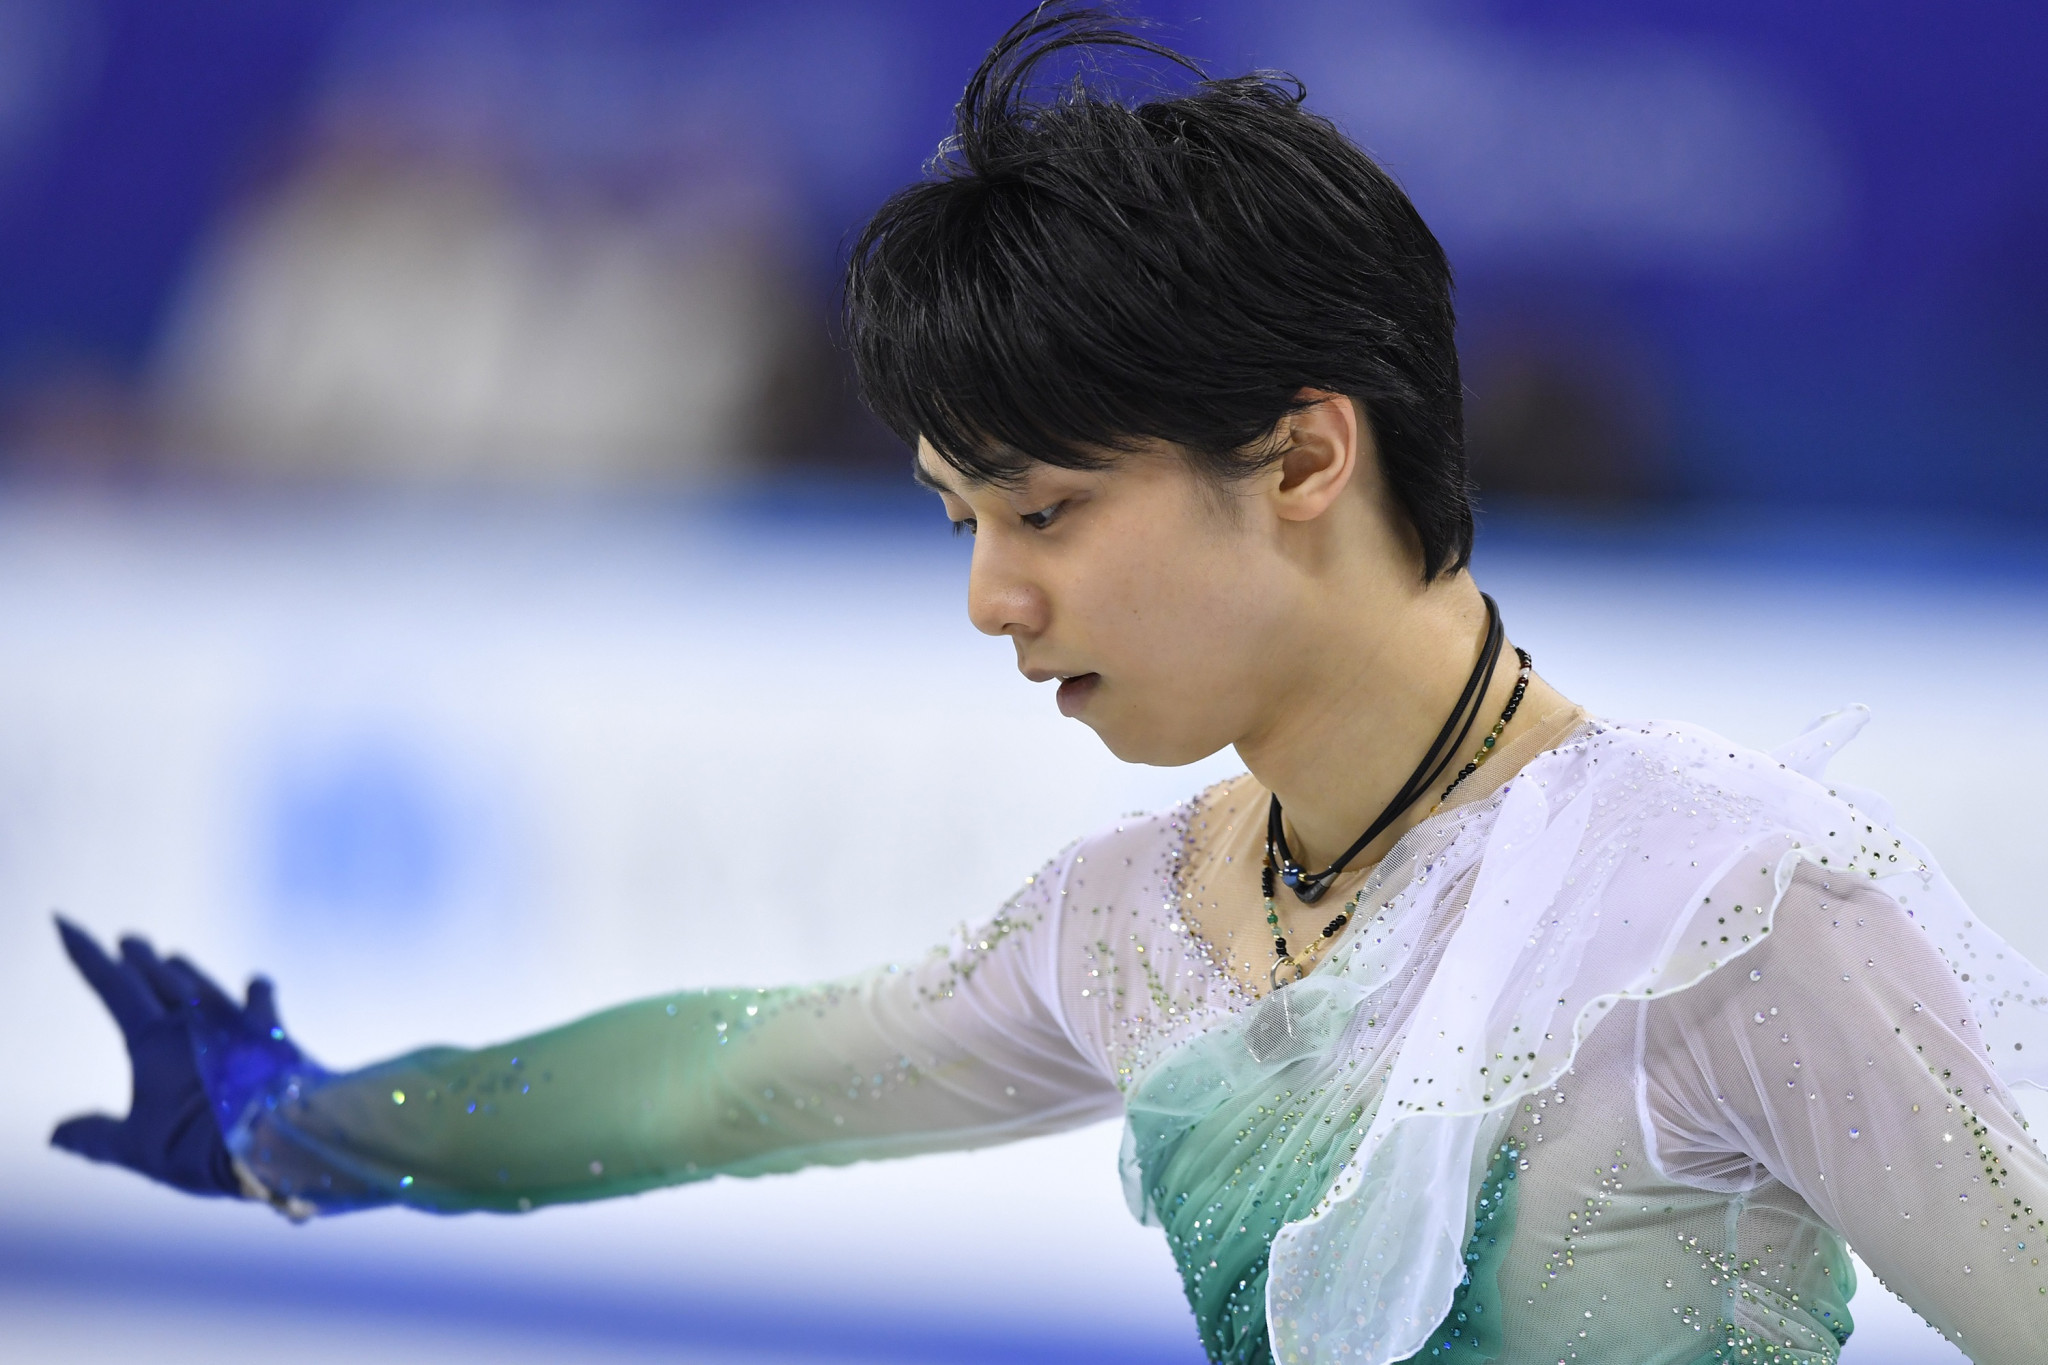 Yuzuru Hanyu was named the Most Valuable Skater at the first ever ISU Awards ©Getty Images